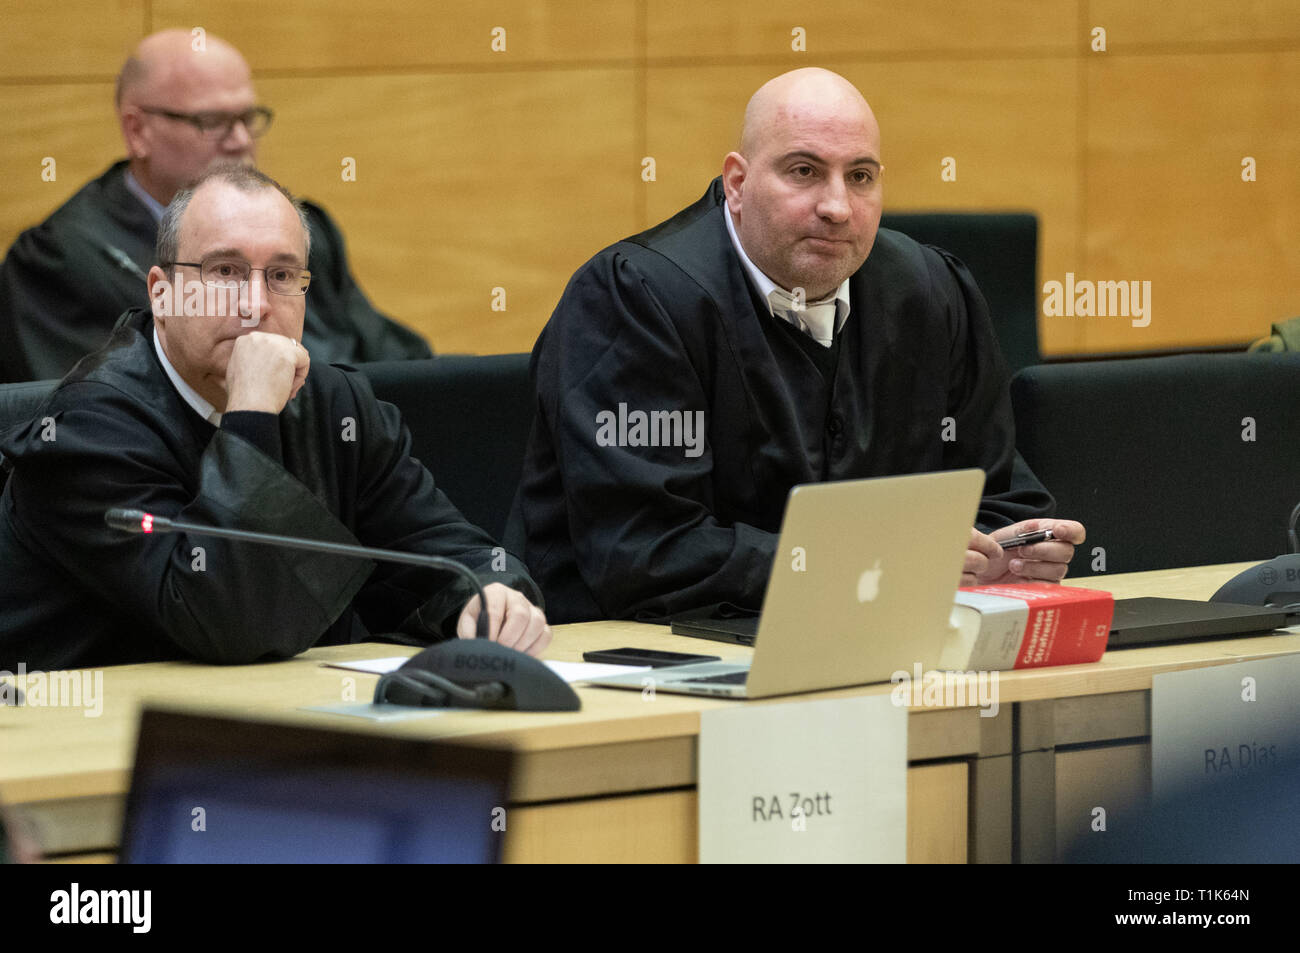 Bielefeld, Germany. 27th Mar, 2019. The defenders of the accused, Andreas Zott (l) and Paulo Dias (r), sit in a hall of the district court. A trial against eight men on suspicion of a serious breach of the peace begins under great security precautions. The defendants, aged between 20 and 38, are to belong to an extended family. After an argument, one of the men was expelled from a discotheque. The 27-year-old is said to have called his brother and other relatives to it. The argument escalated. Credit: Friso Gentsch/dpa/Alamy Live News Stock Photo